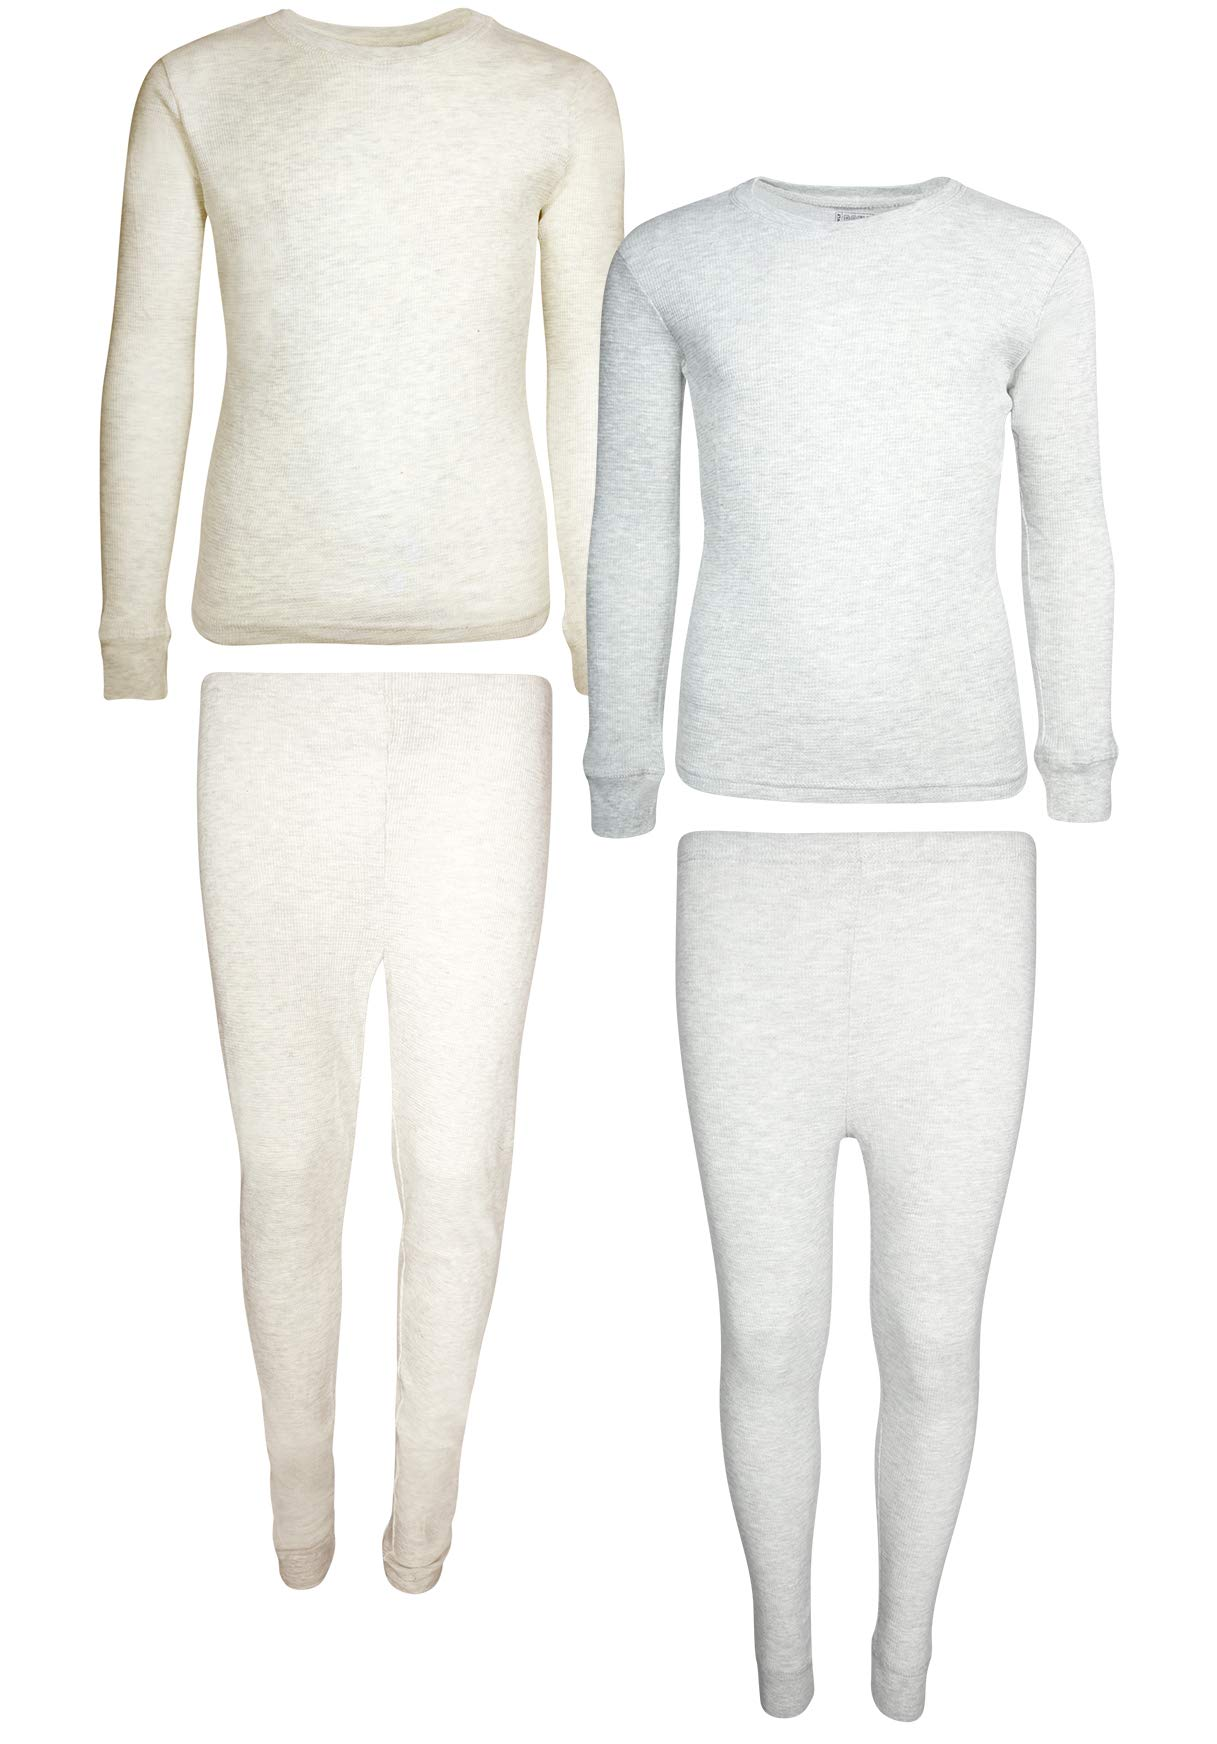 Only Boys 2-Pack Thermal Warm Underwear Top and Pant Set (2 Full Sets) (2T, Oatmeal/Heather Grey)' by Only Boys